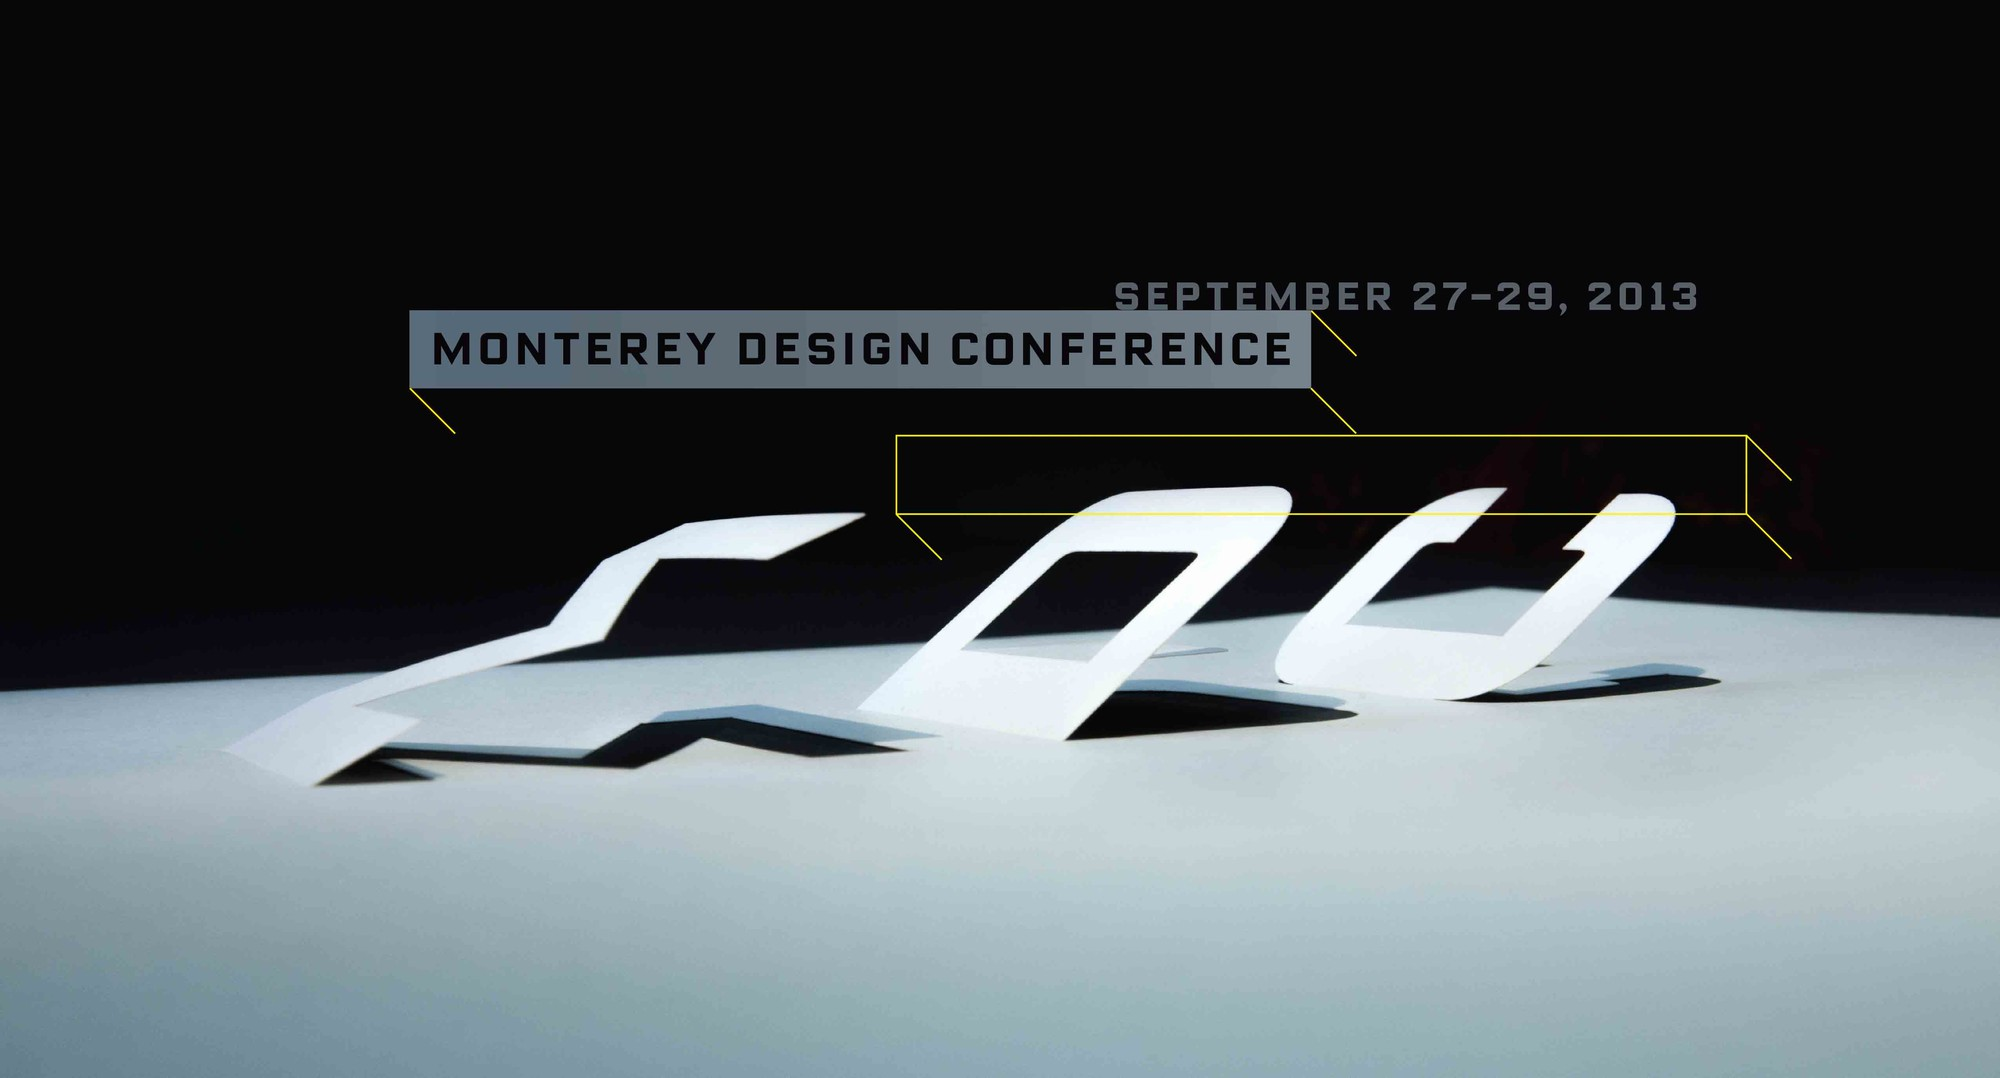 Monterey Design Conference 2013, Courtesy of American Institute of Architects, California Council (AIACC)